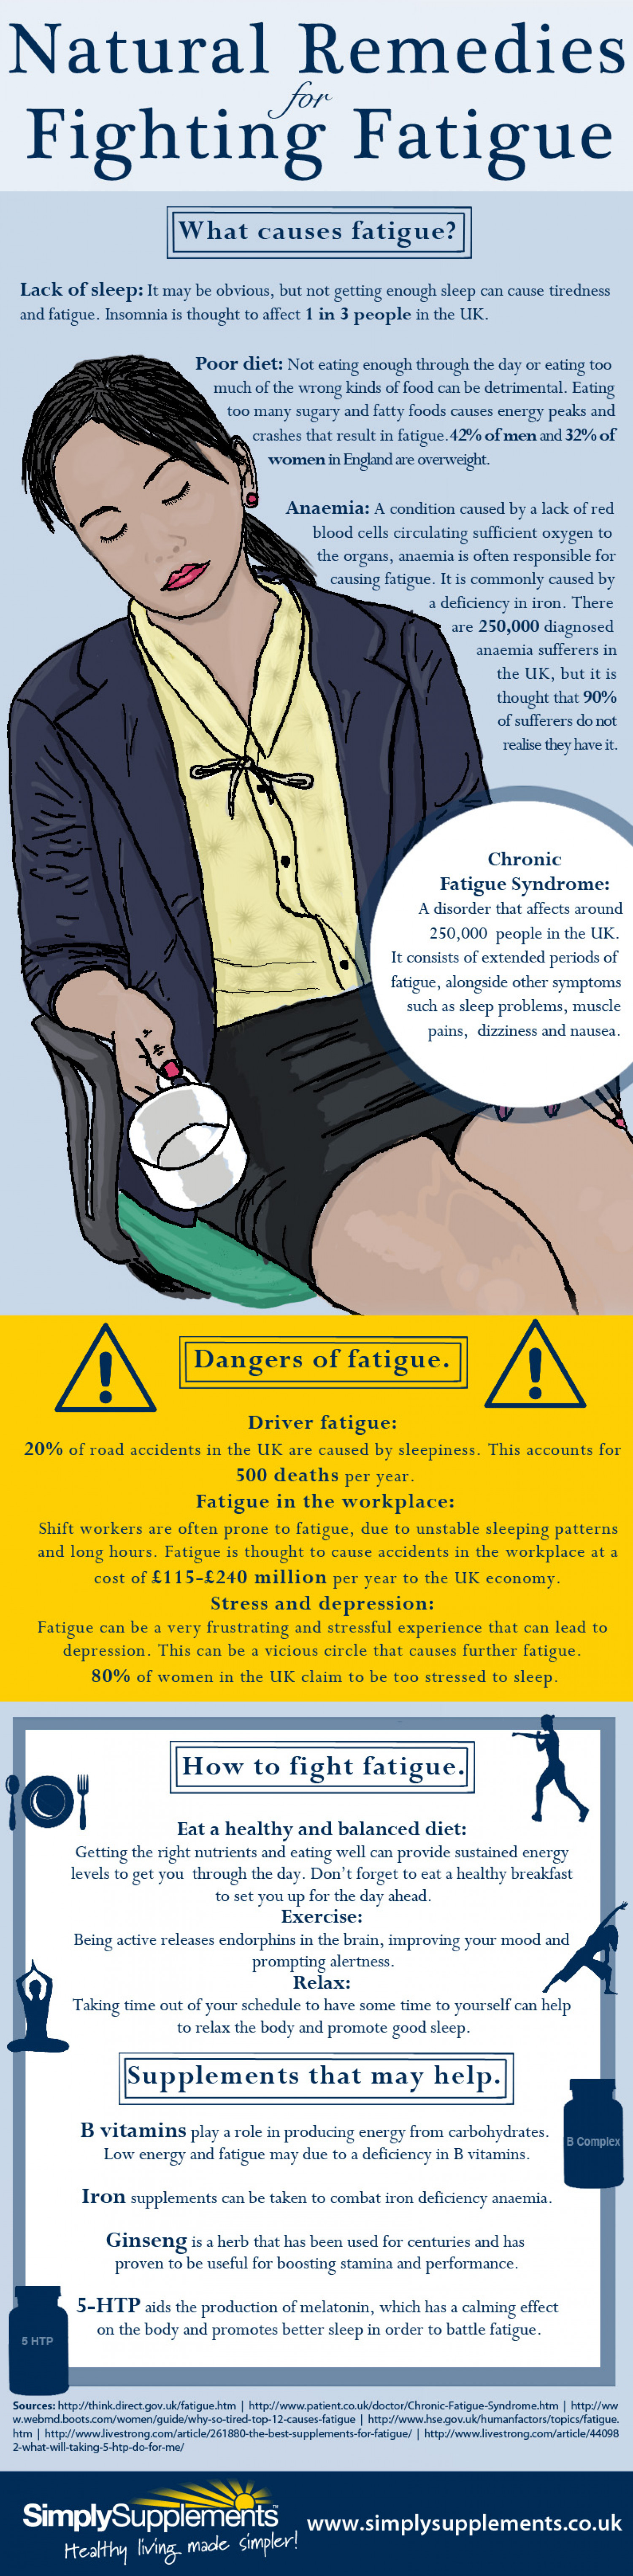 Natural Remedies for Fighting Fatigue Infographic